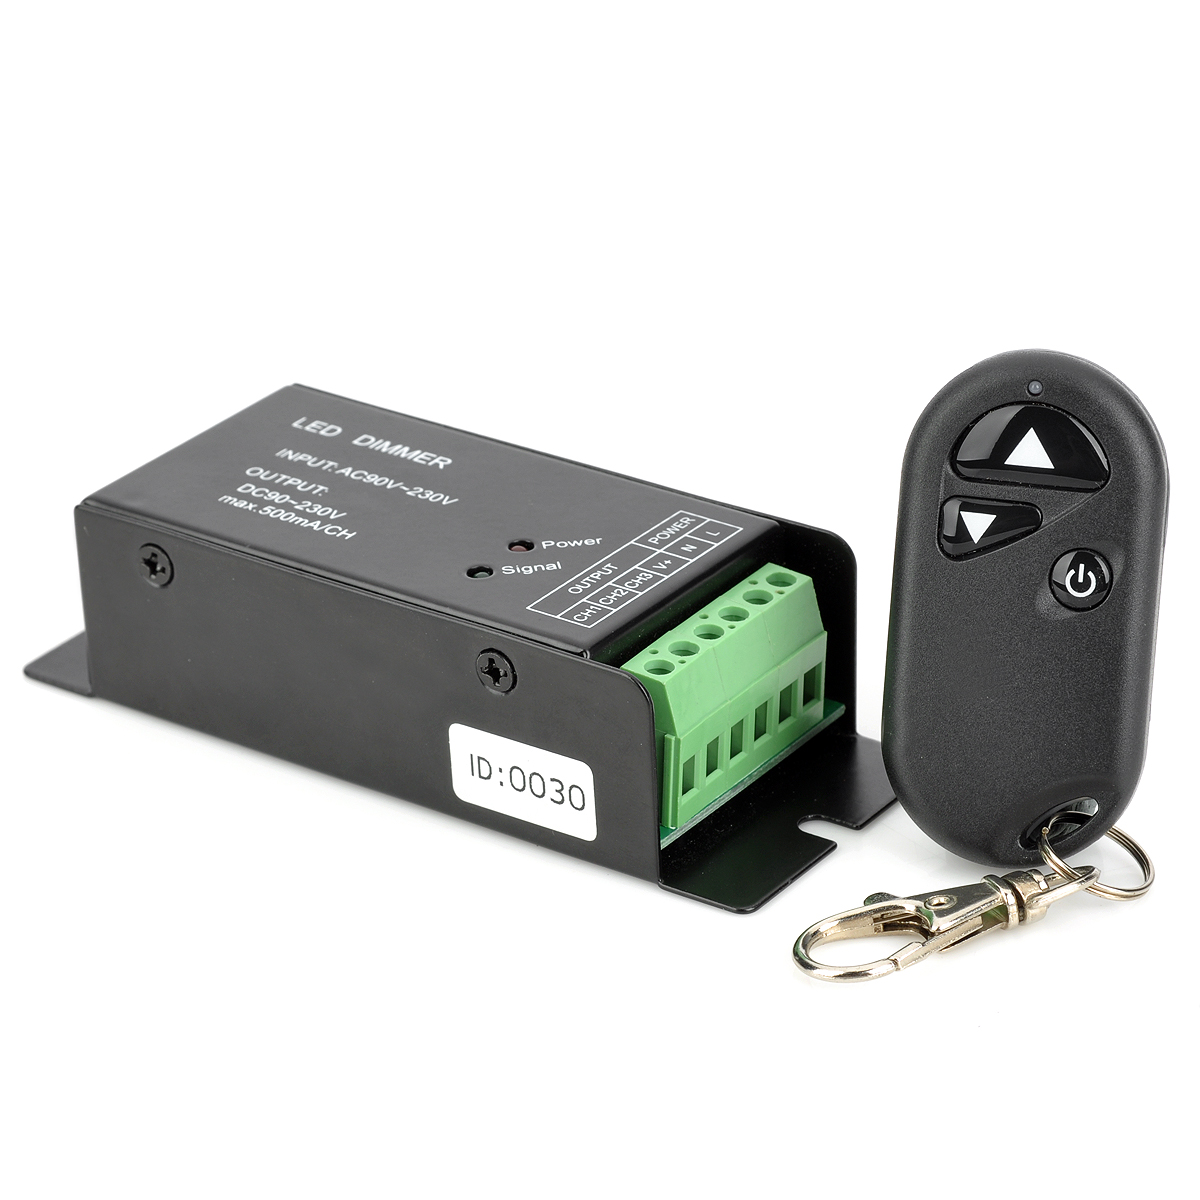 Wireless LED Dimmer w/ RF Remote Control - Black + Green